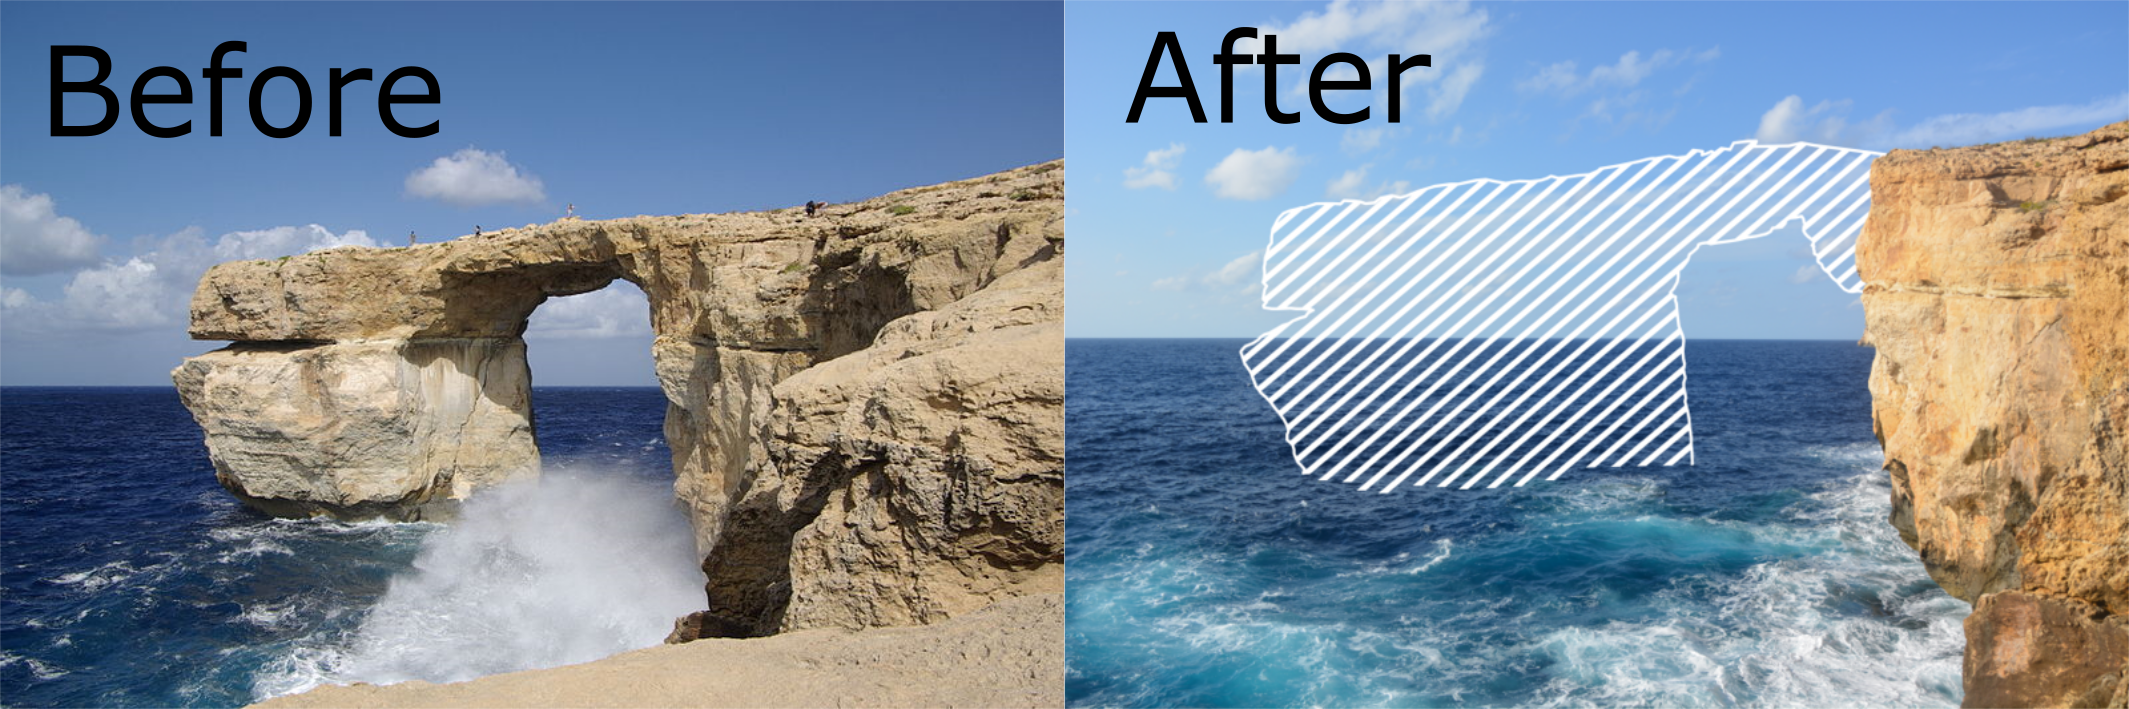 The Azure Window in Malta before and after itu0027s collapse.  sc 1 st  Jurassic Coast & The Future of Durdle Door - Jurassic Coast World Heritage Site